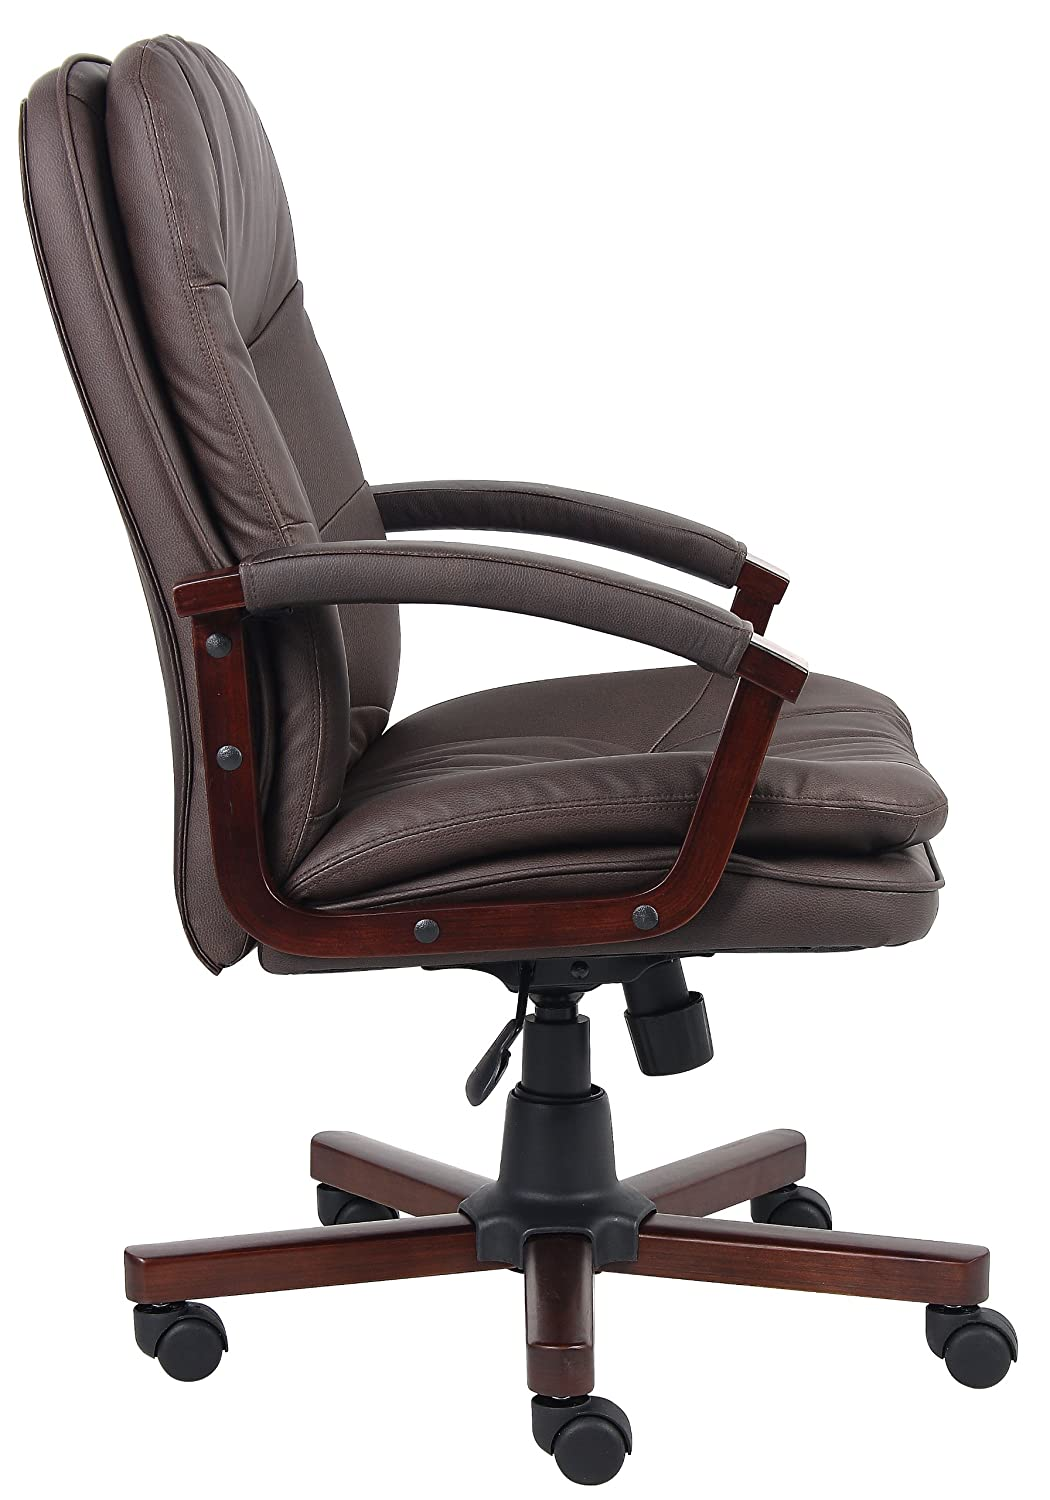 Perfect Amazon.com: Boss Office Products B796 VSBN Versailles Cherry Wood Executive  Chair In Brown: Kitchen U0026 Dining